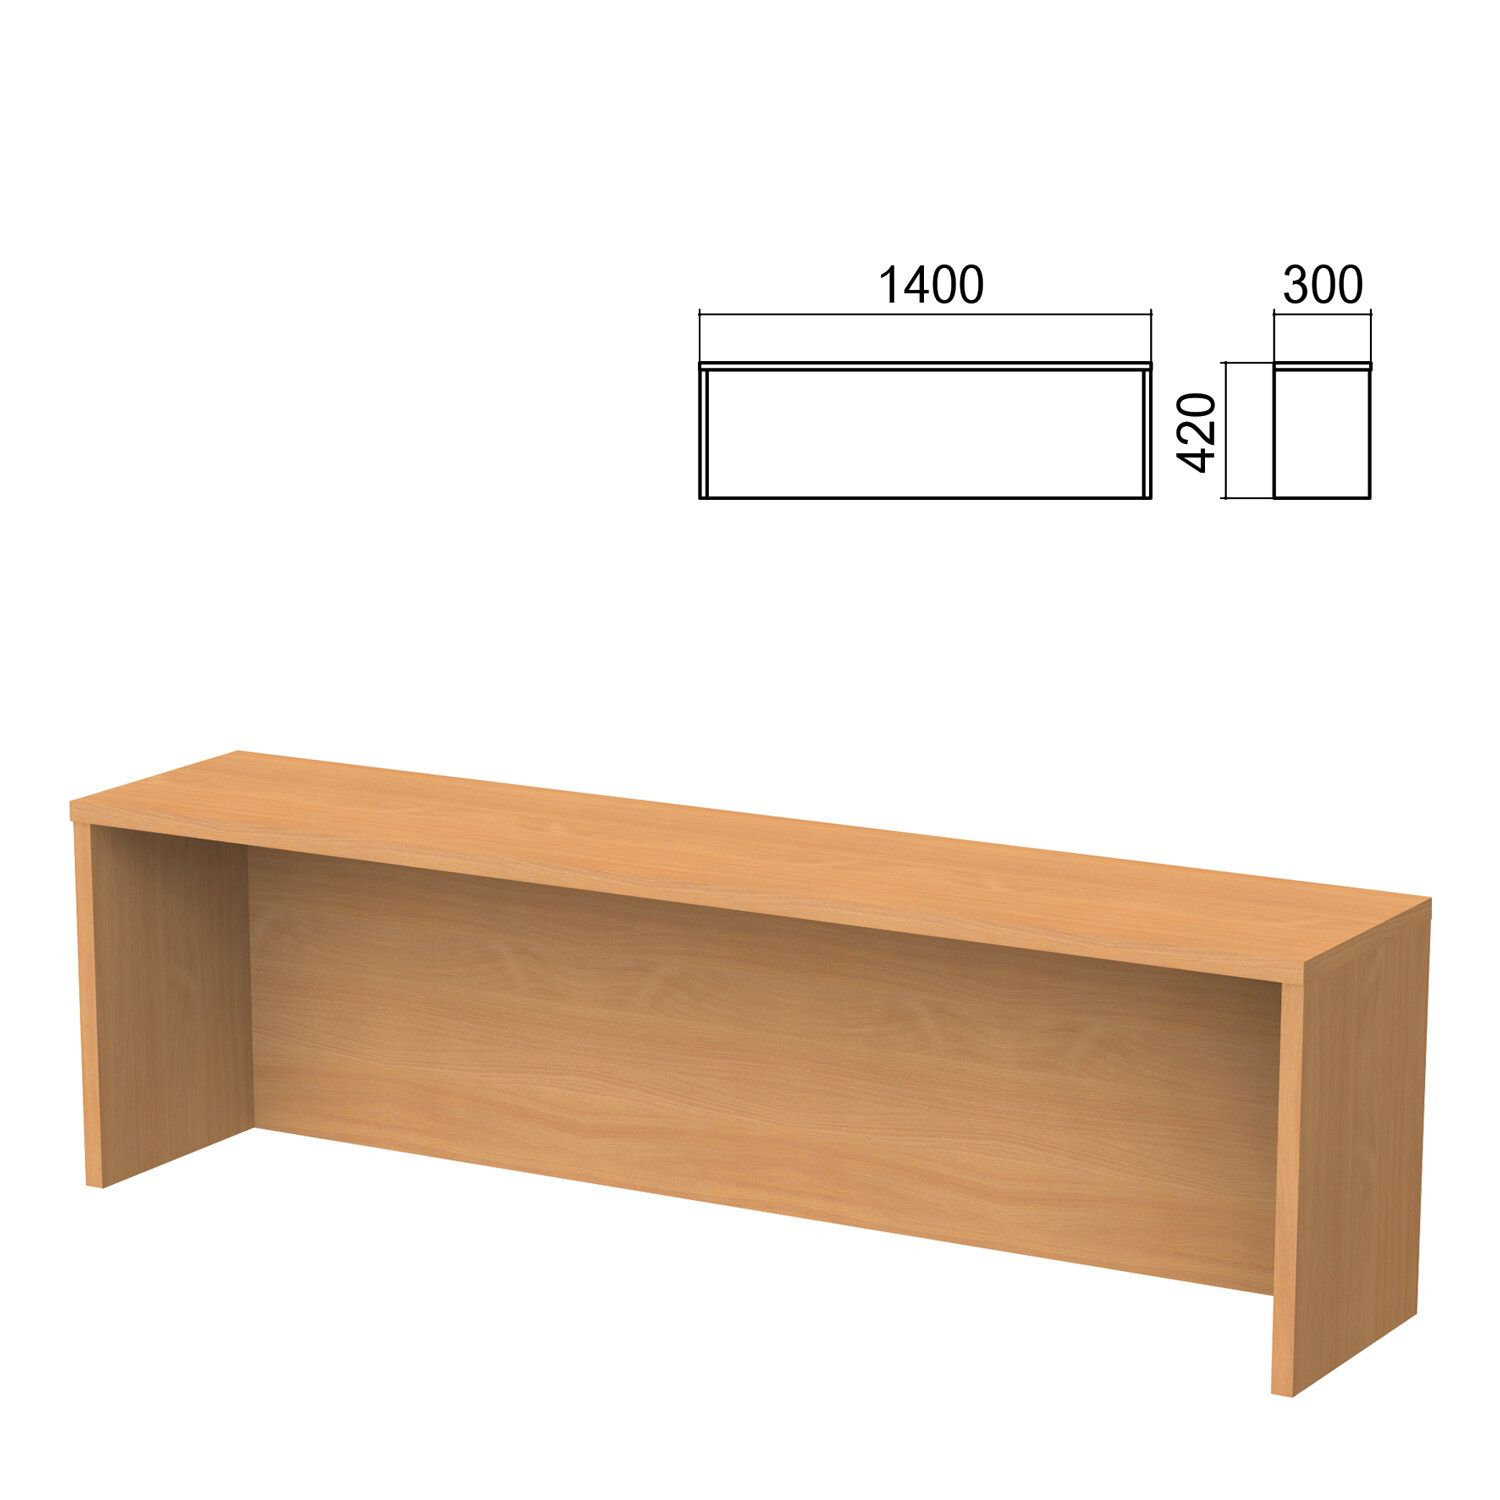 Argo table add-on, 1400 mm wide, aroso pear